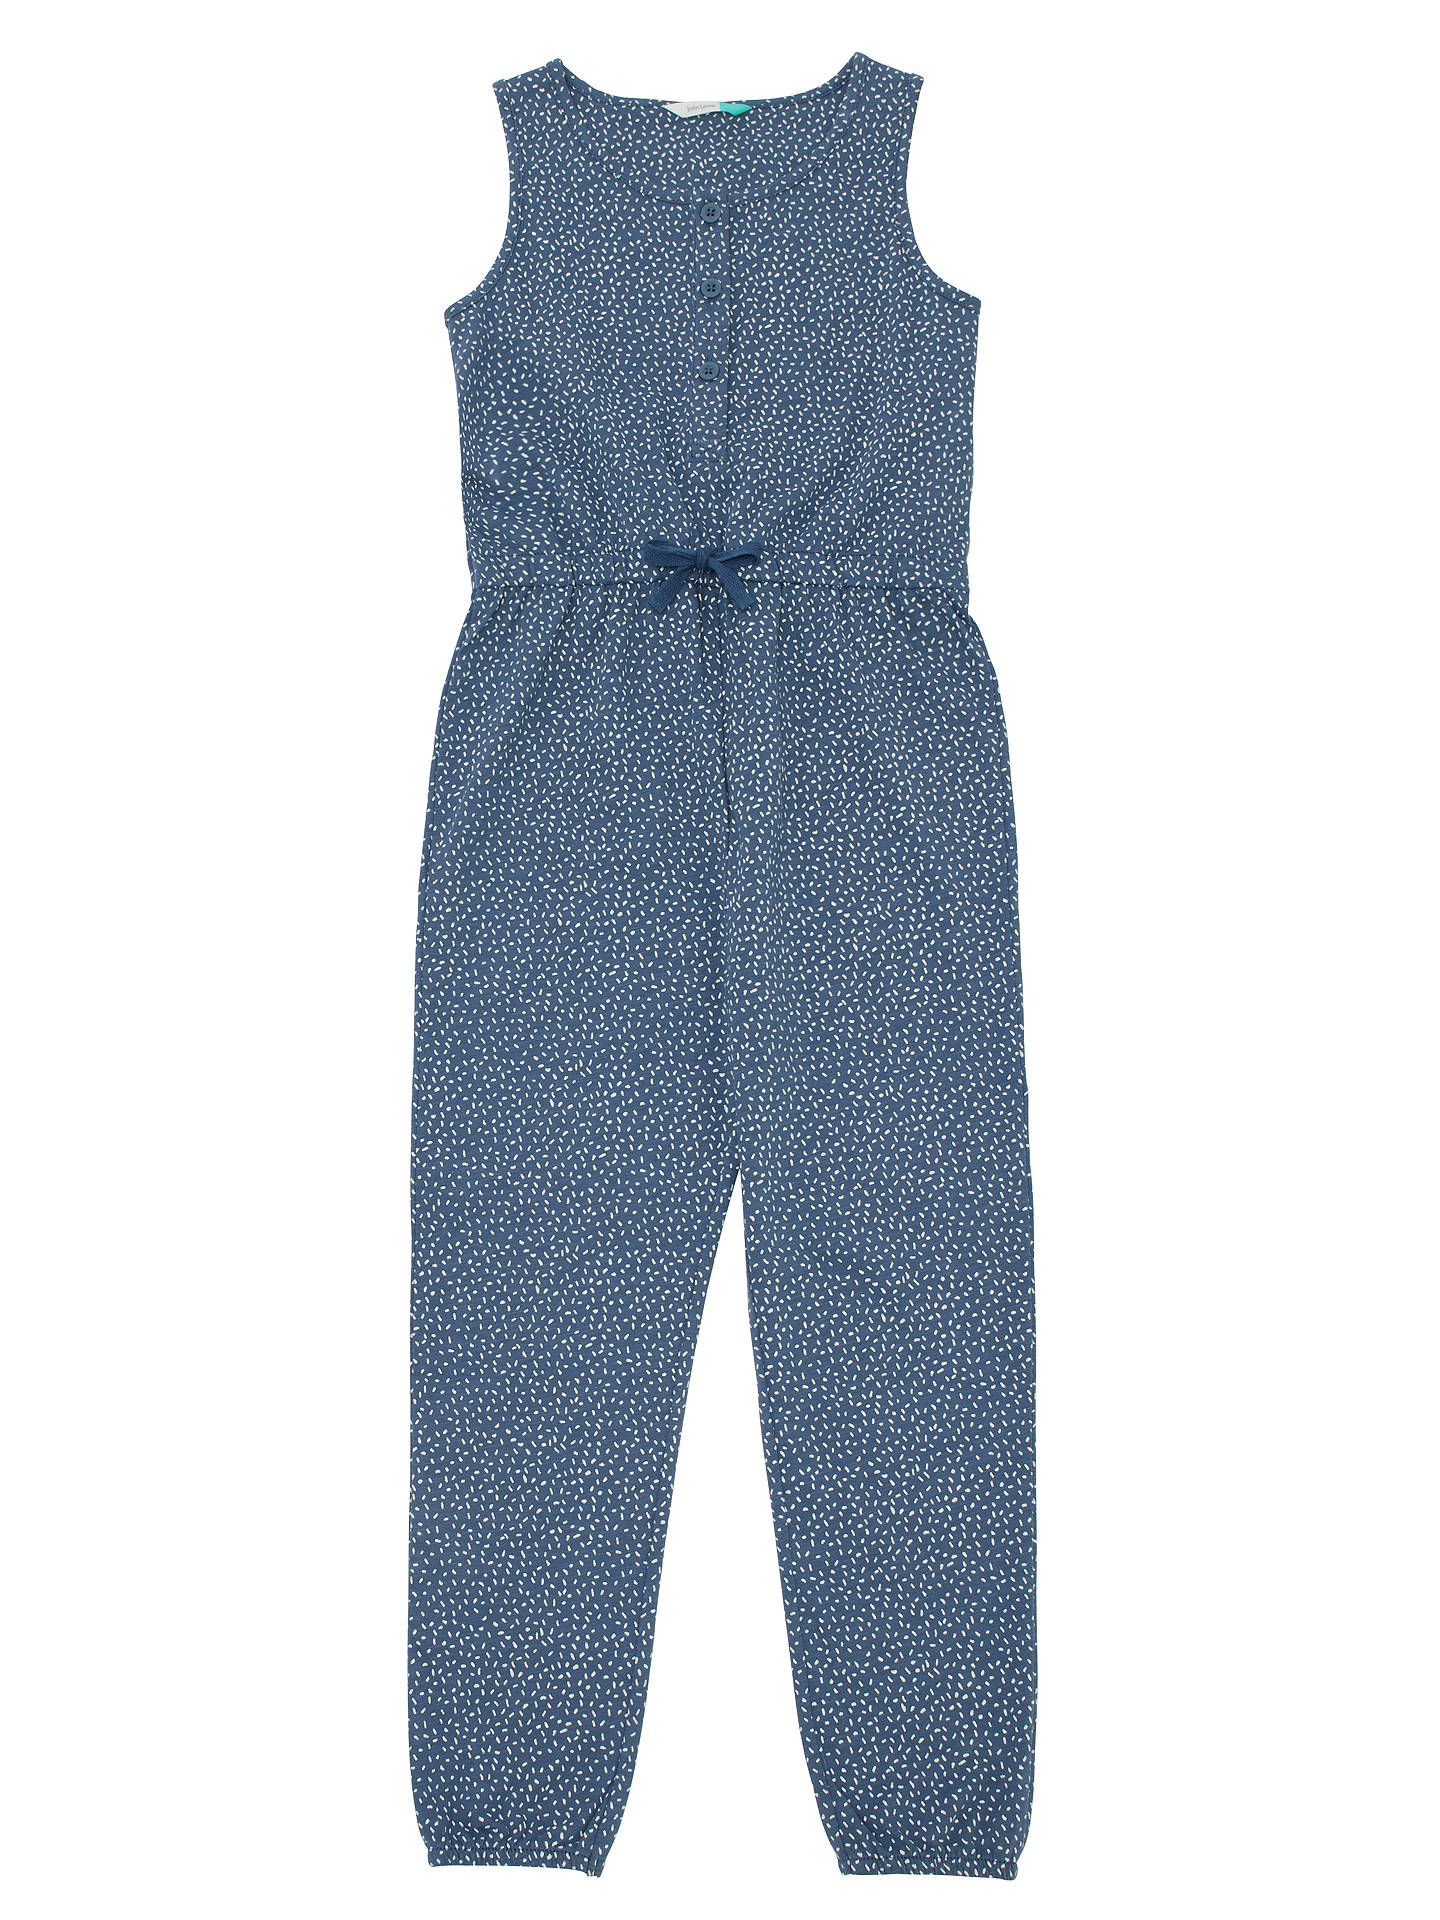 BuyJohn Lewis & Partners Girls' Jumpsuit, Blue, 2 years Online at johnlewis.com